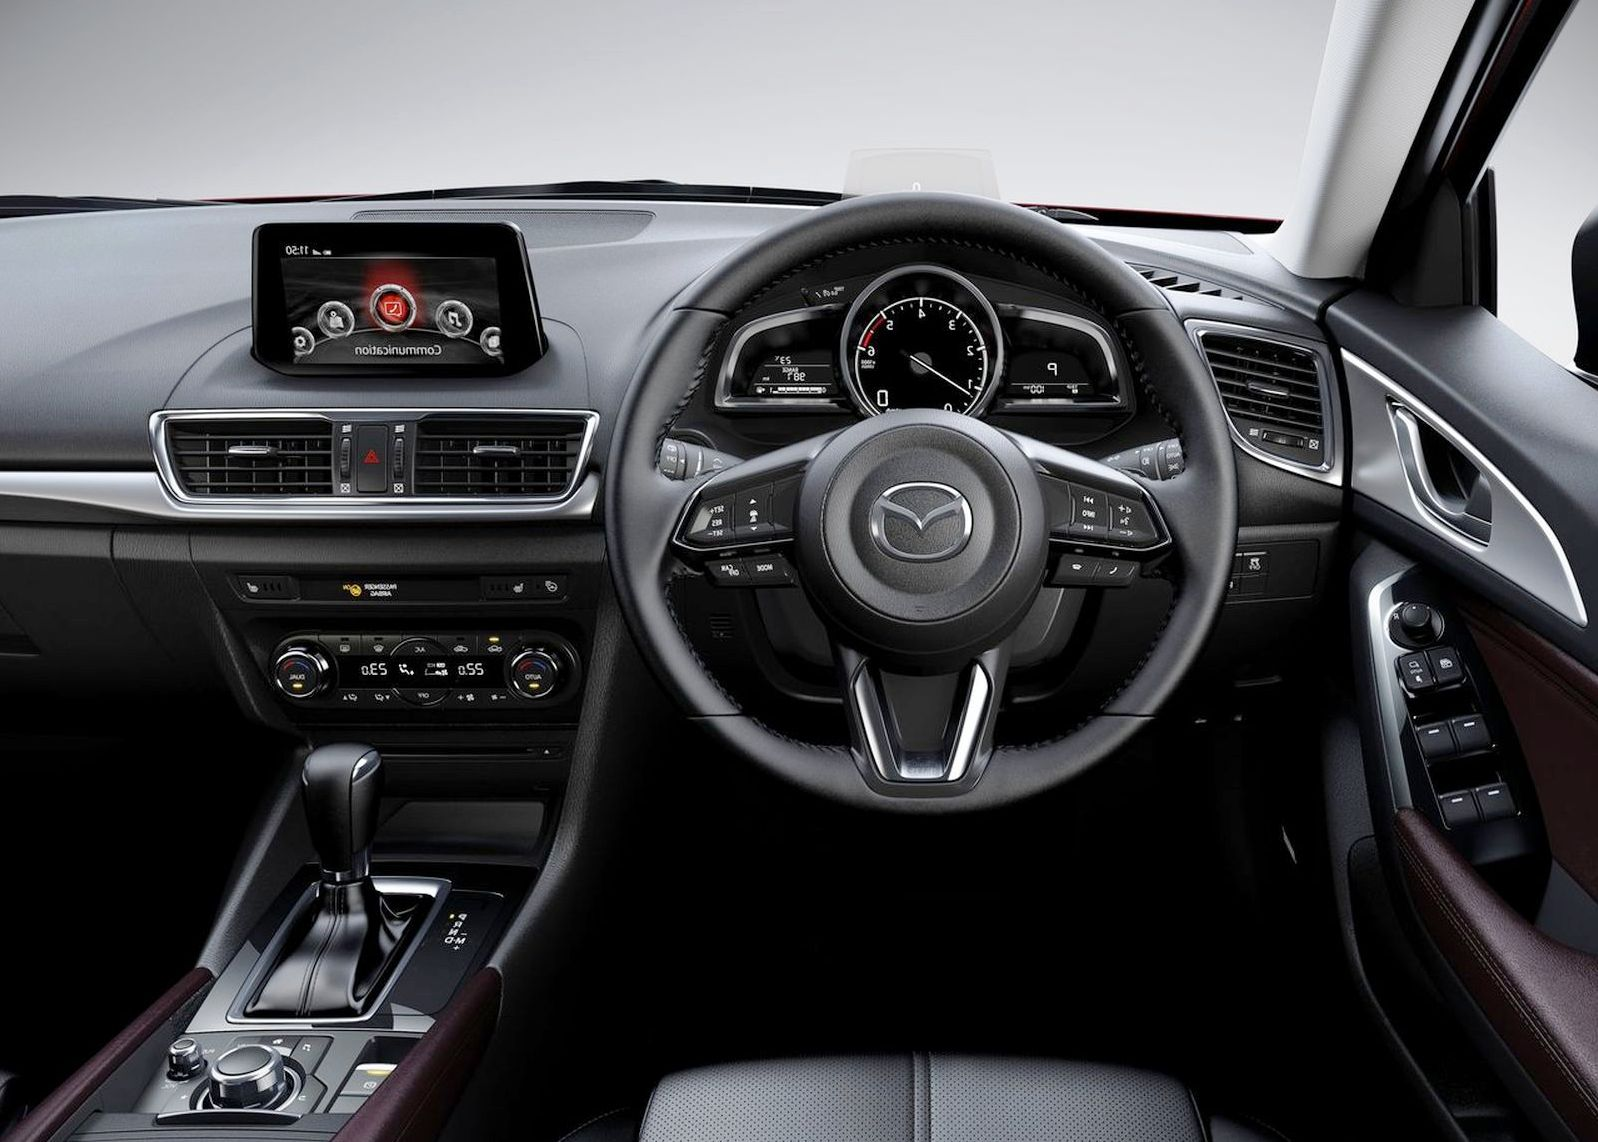 2018 Mazda 3 Interior Concept New Suv Price New Suv Price